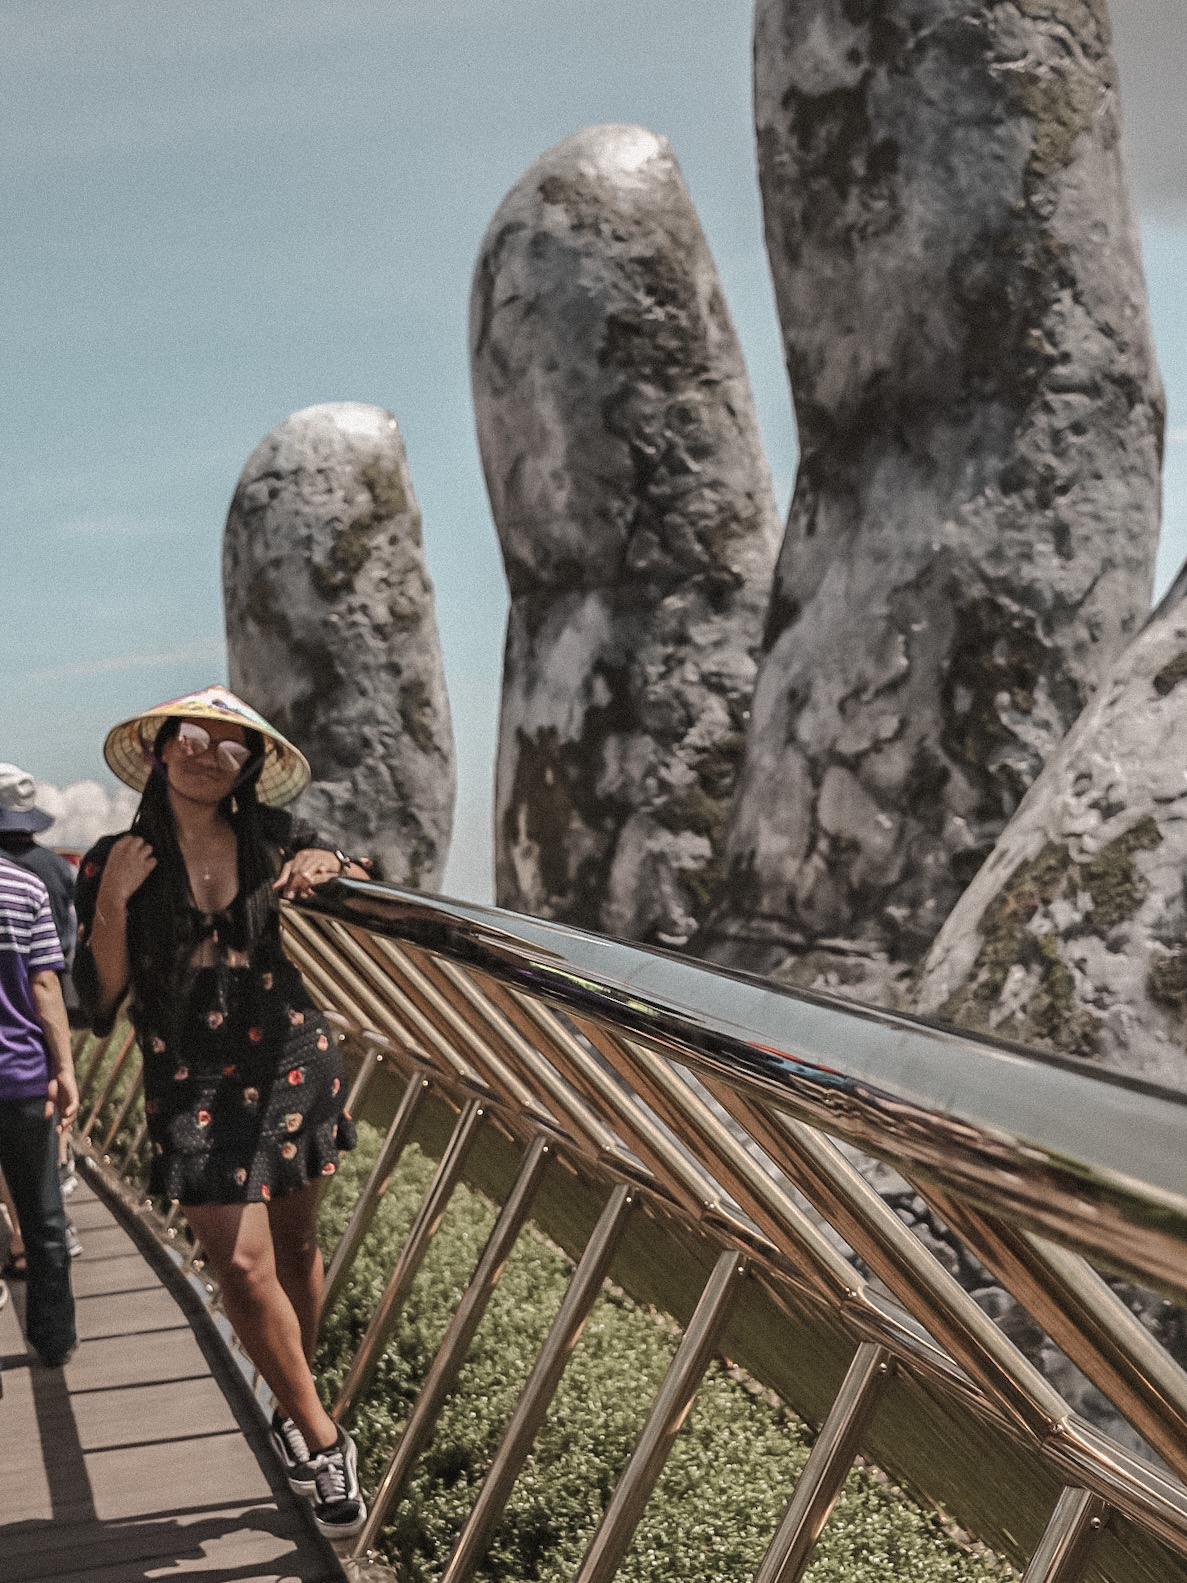 The Golden Bridge @ Sun World at Ba Na Hills, Da Nang, Vietnam